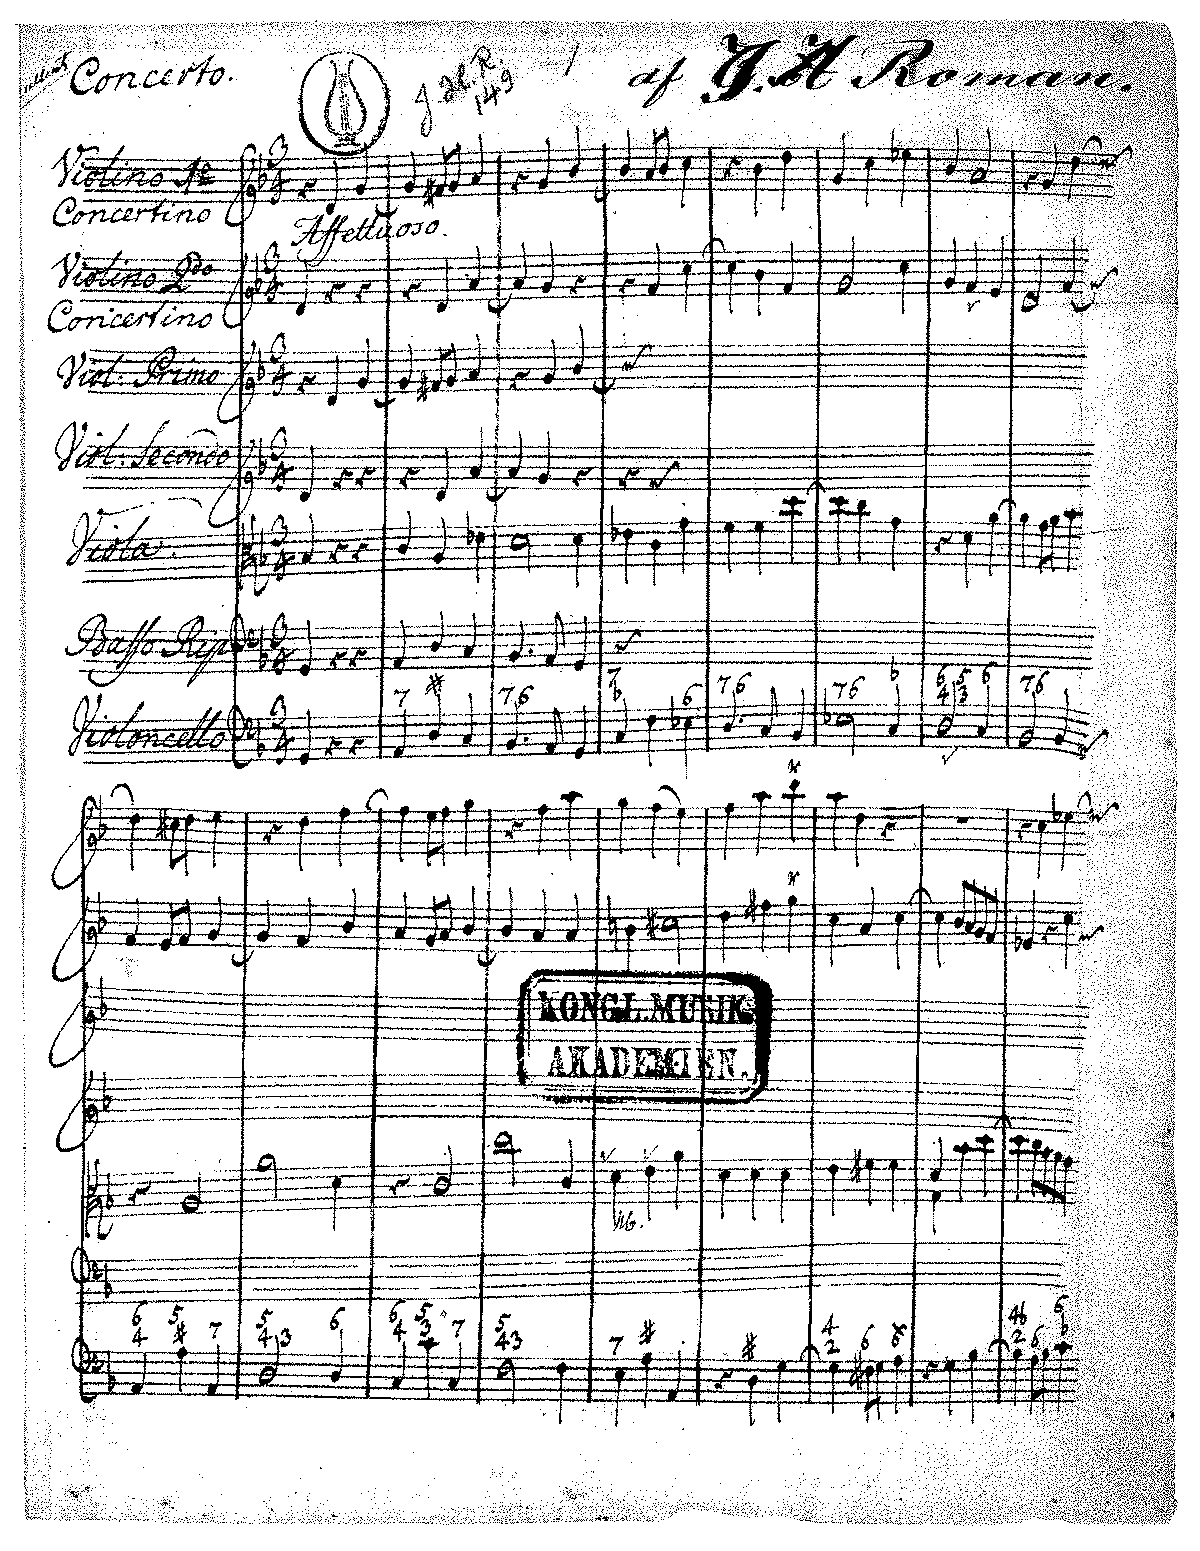 PMLP421143-Concerto g minor manuscript.pdf